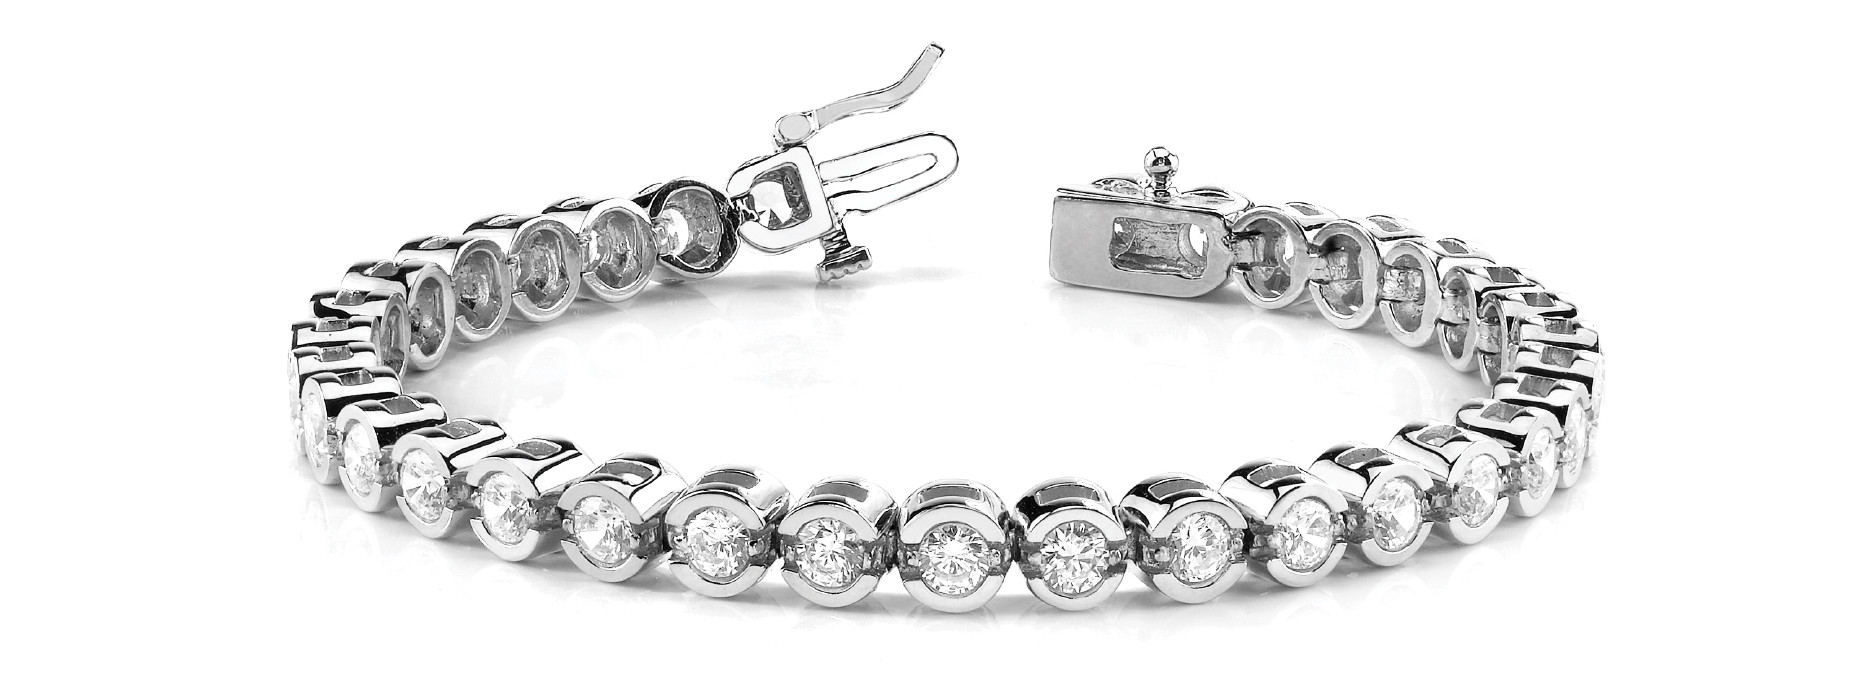 Bracelet In Line Bezel Set